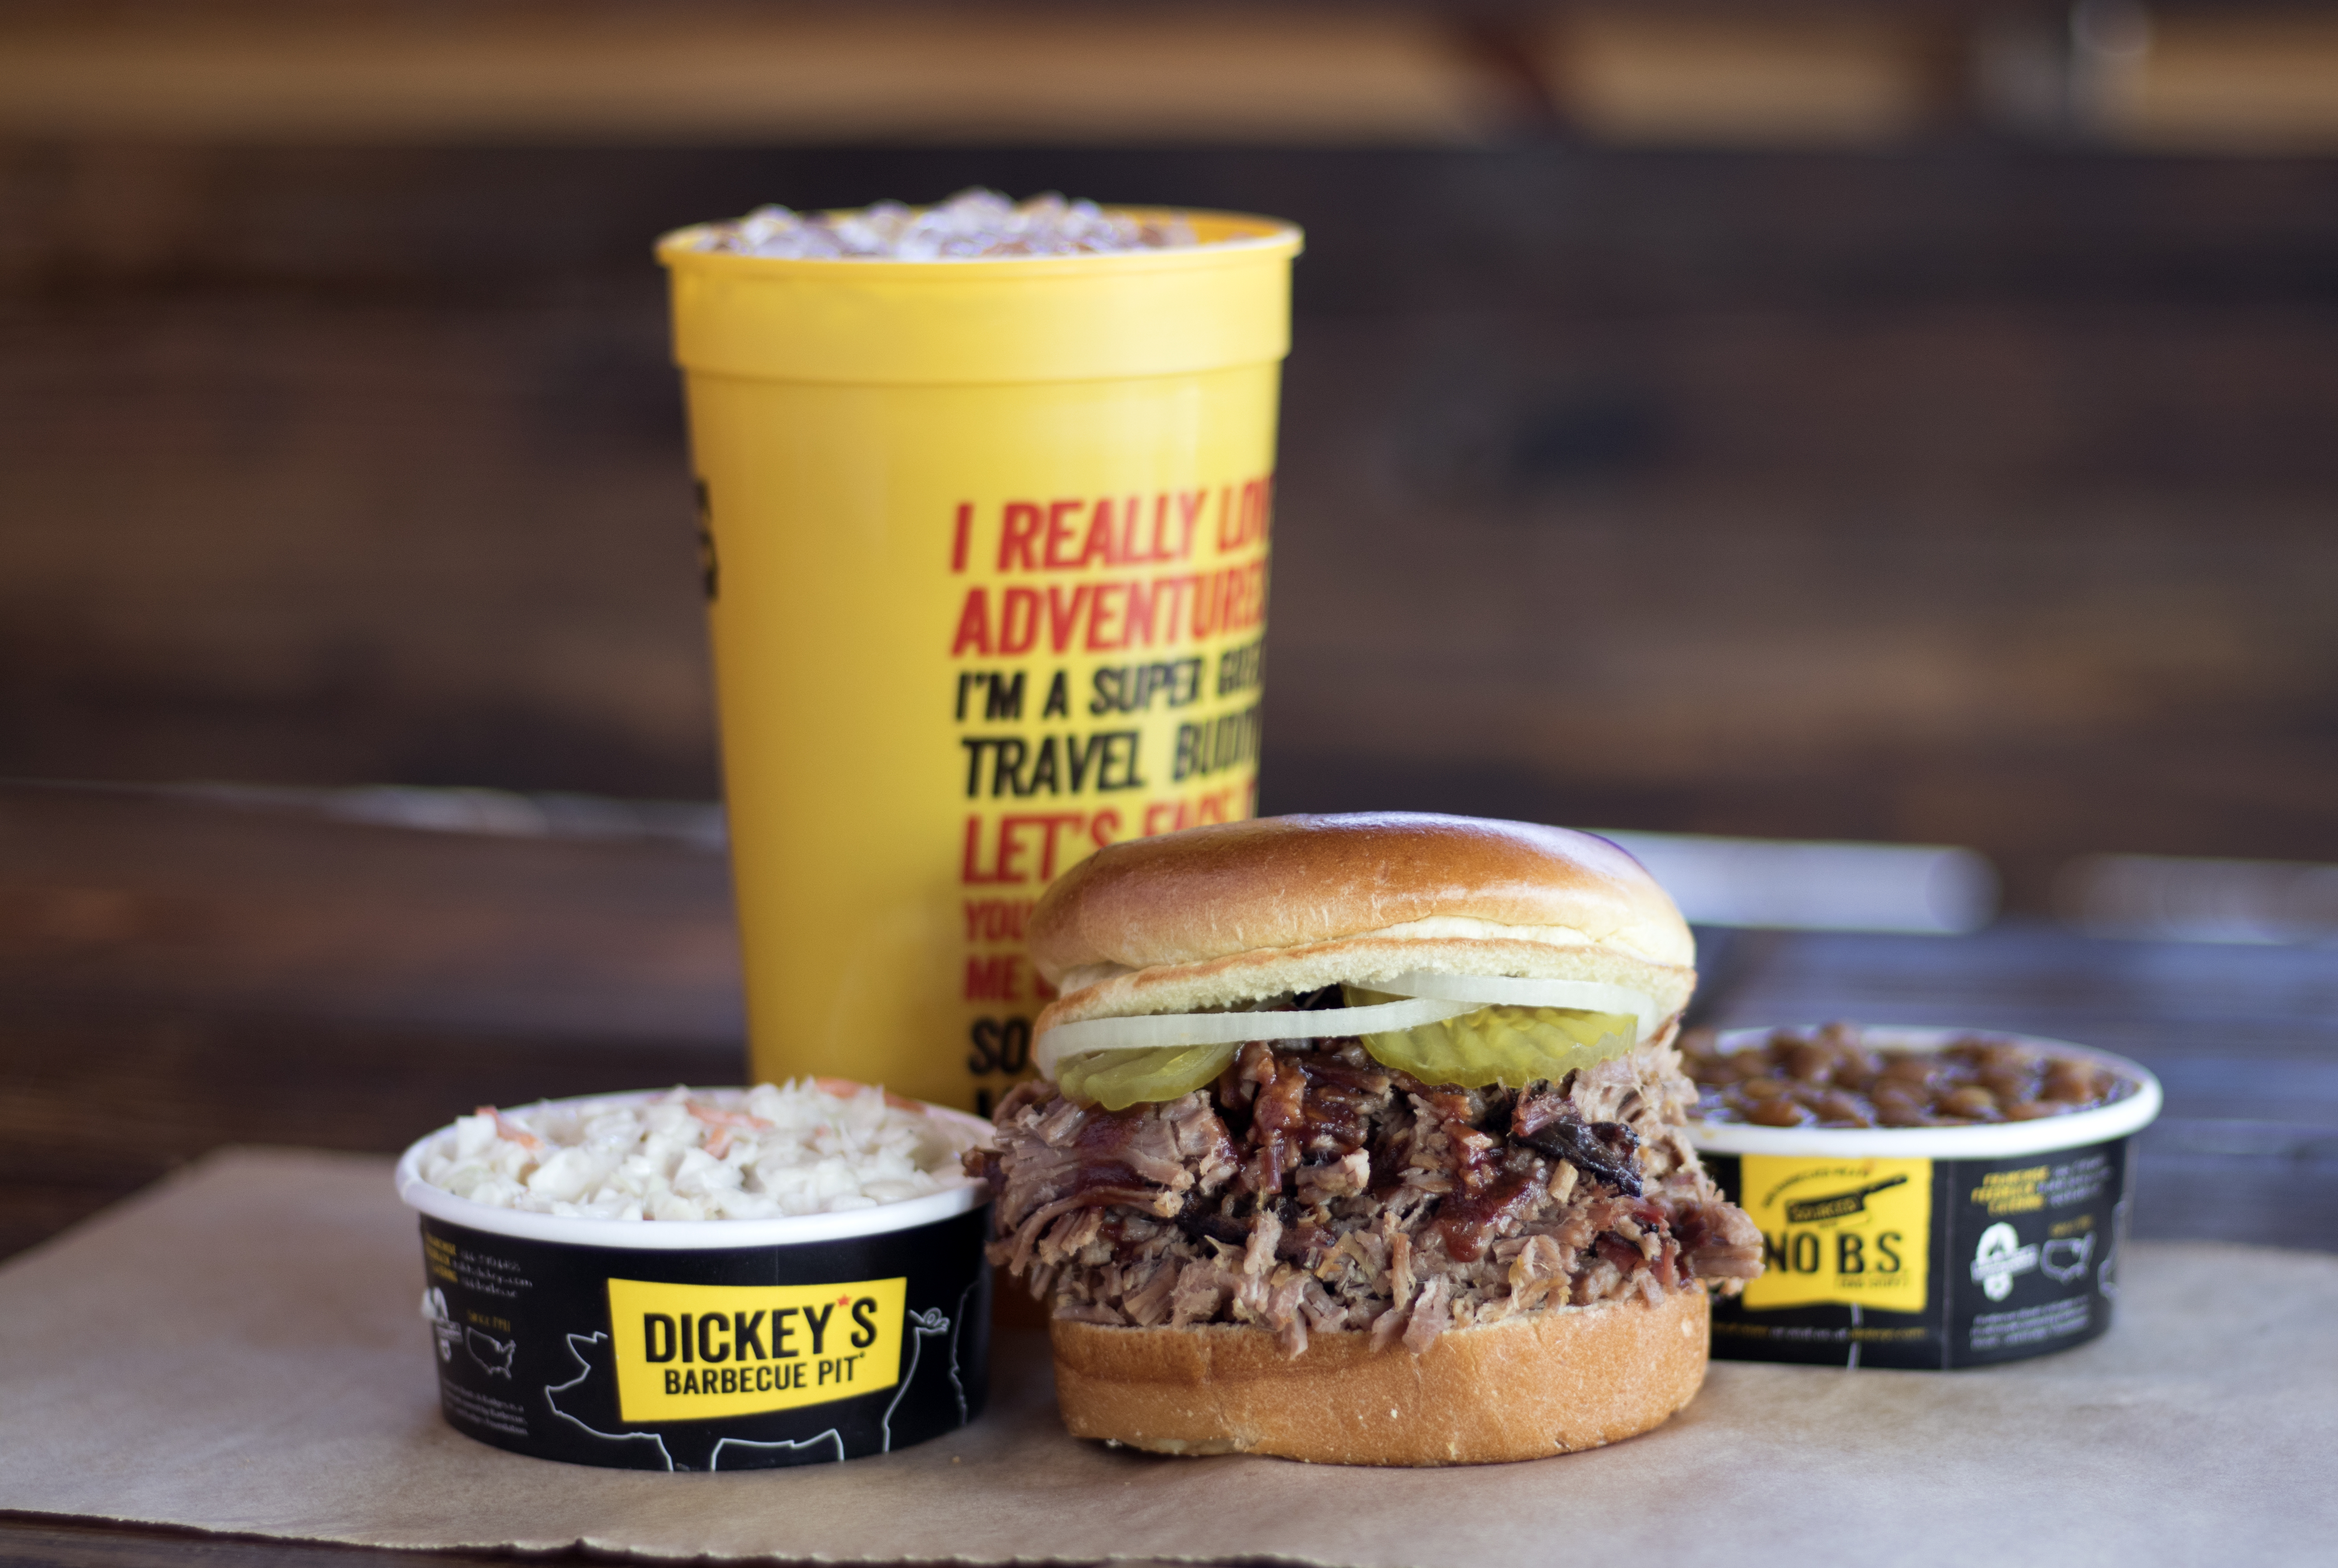 All About Ann Arbor: Dickey's Barbecue Pit opening in Ann Arbor Oct. 26